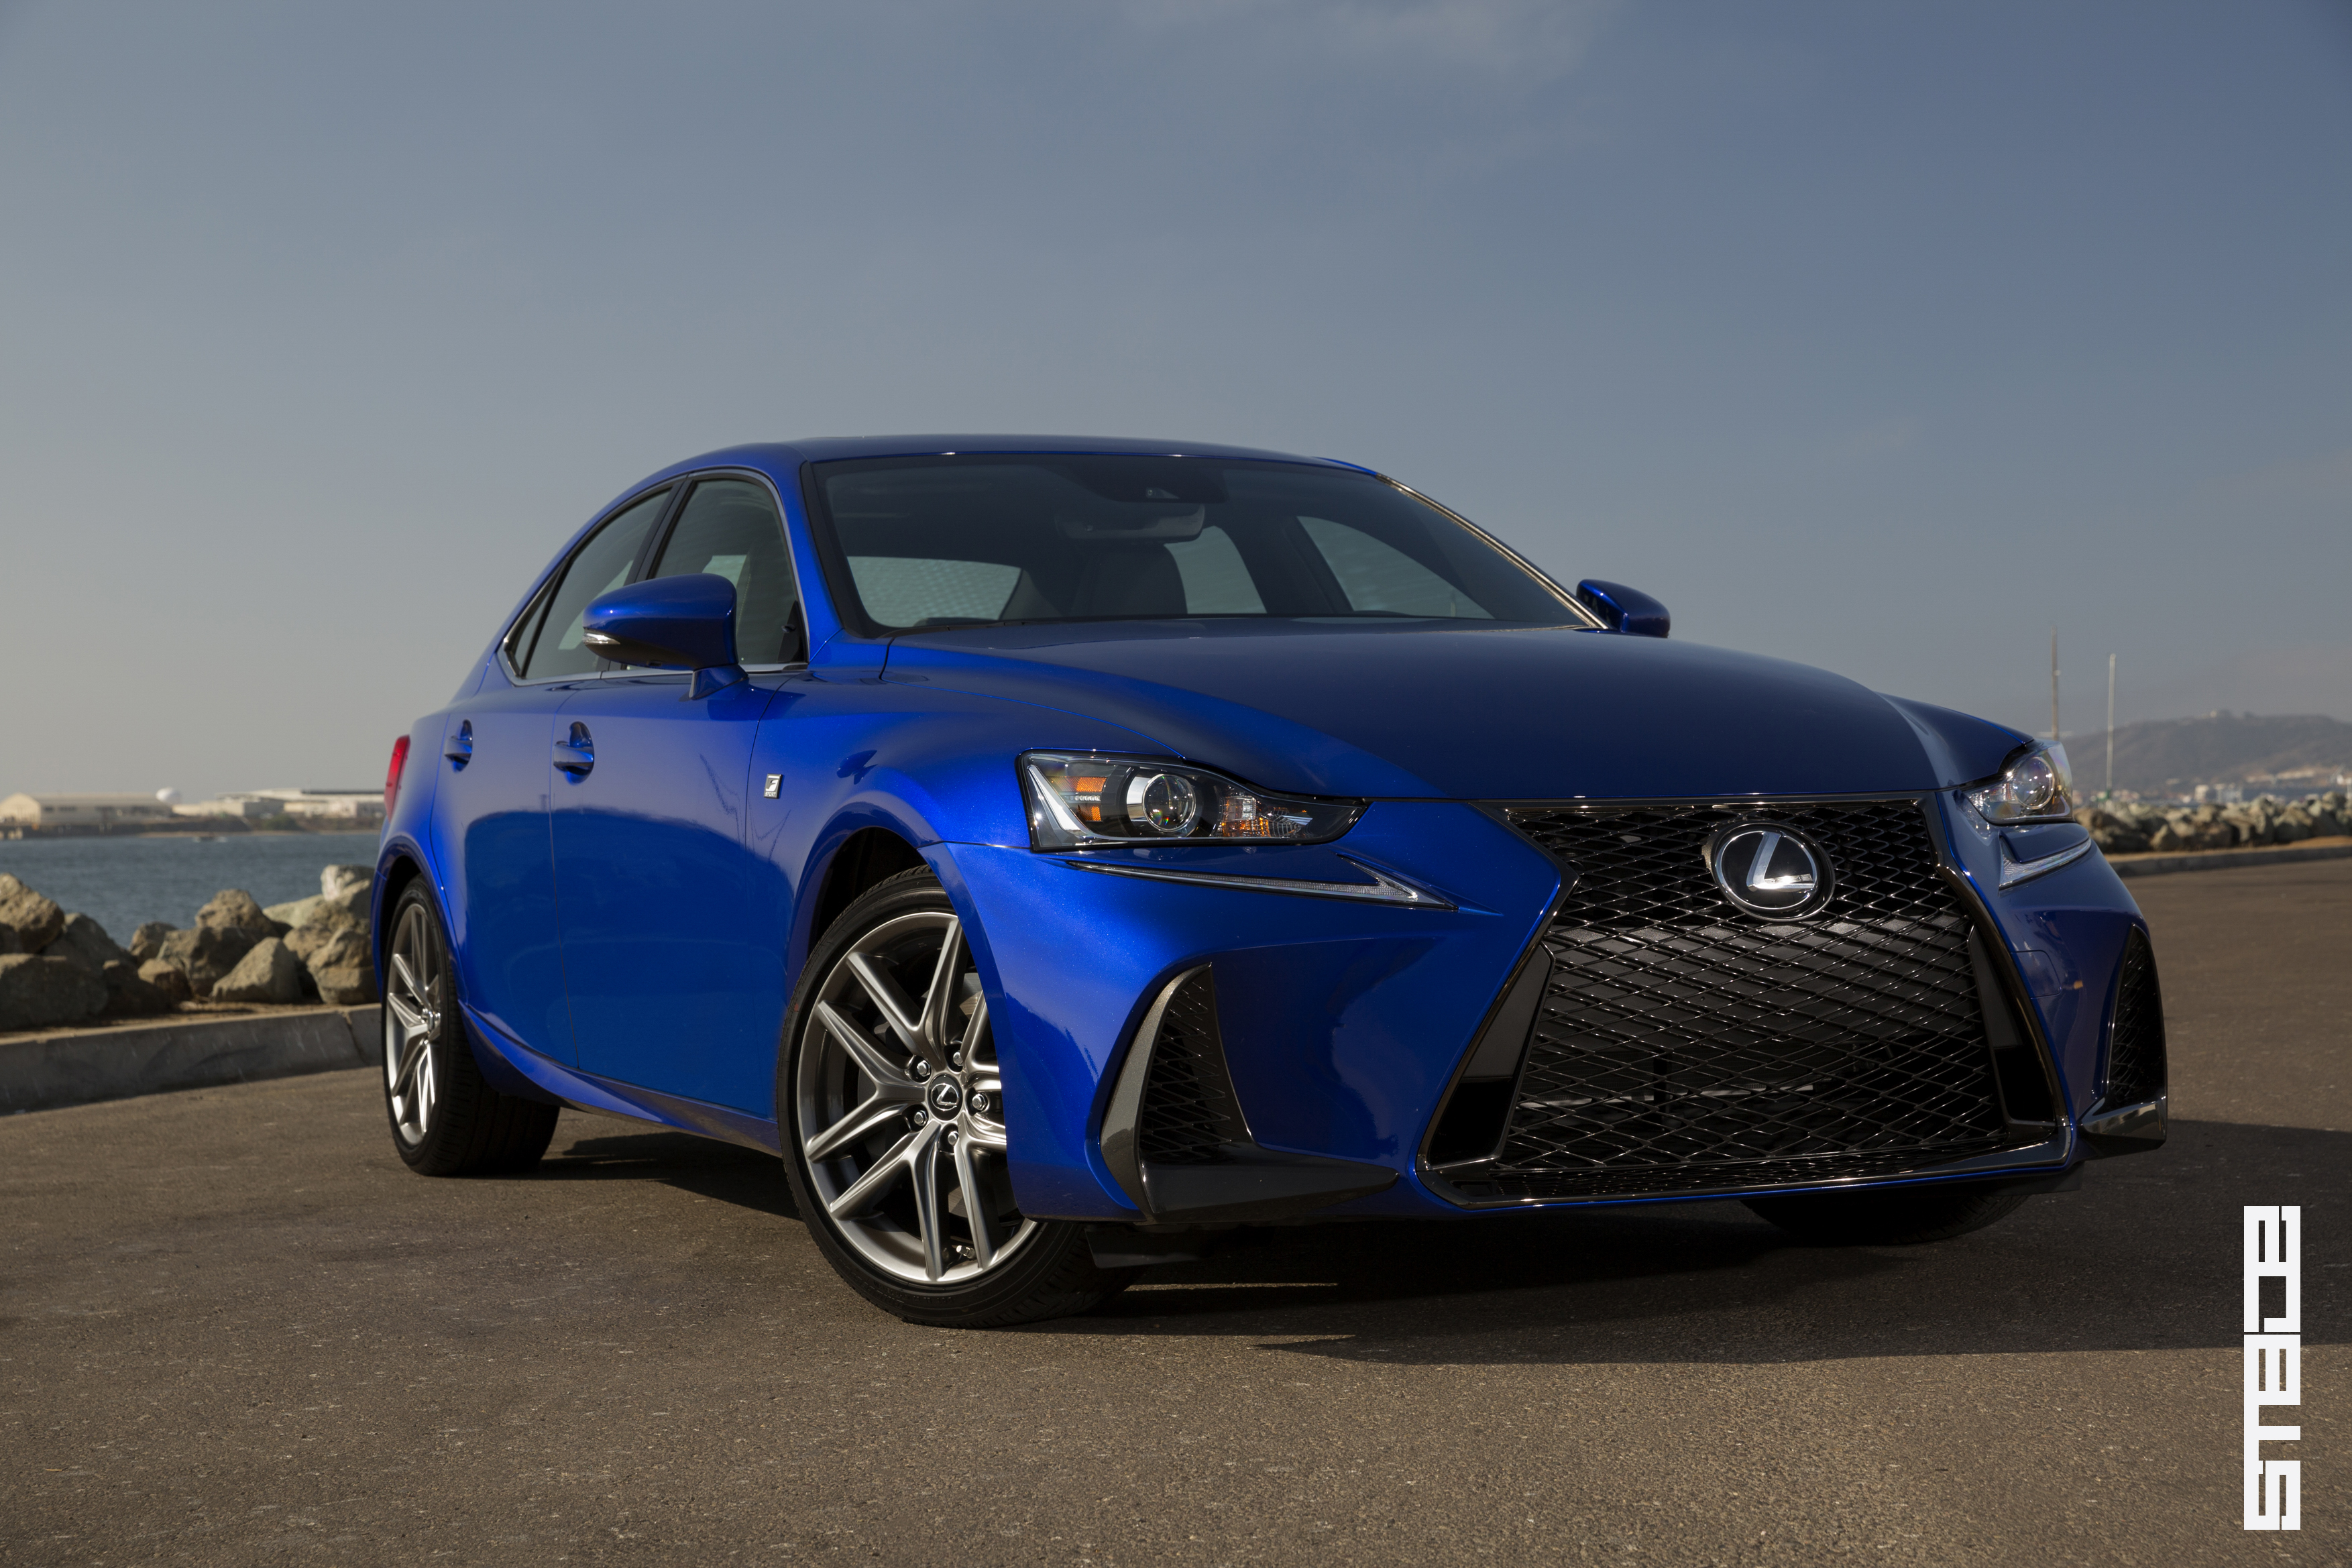 2017 Lexus IS 350 F SPORT - North American Launch Collection